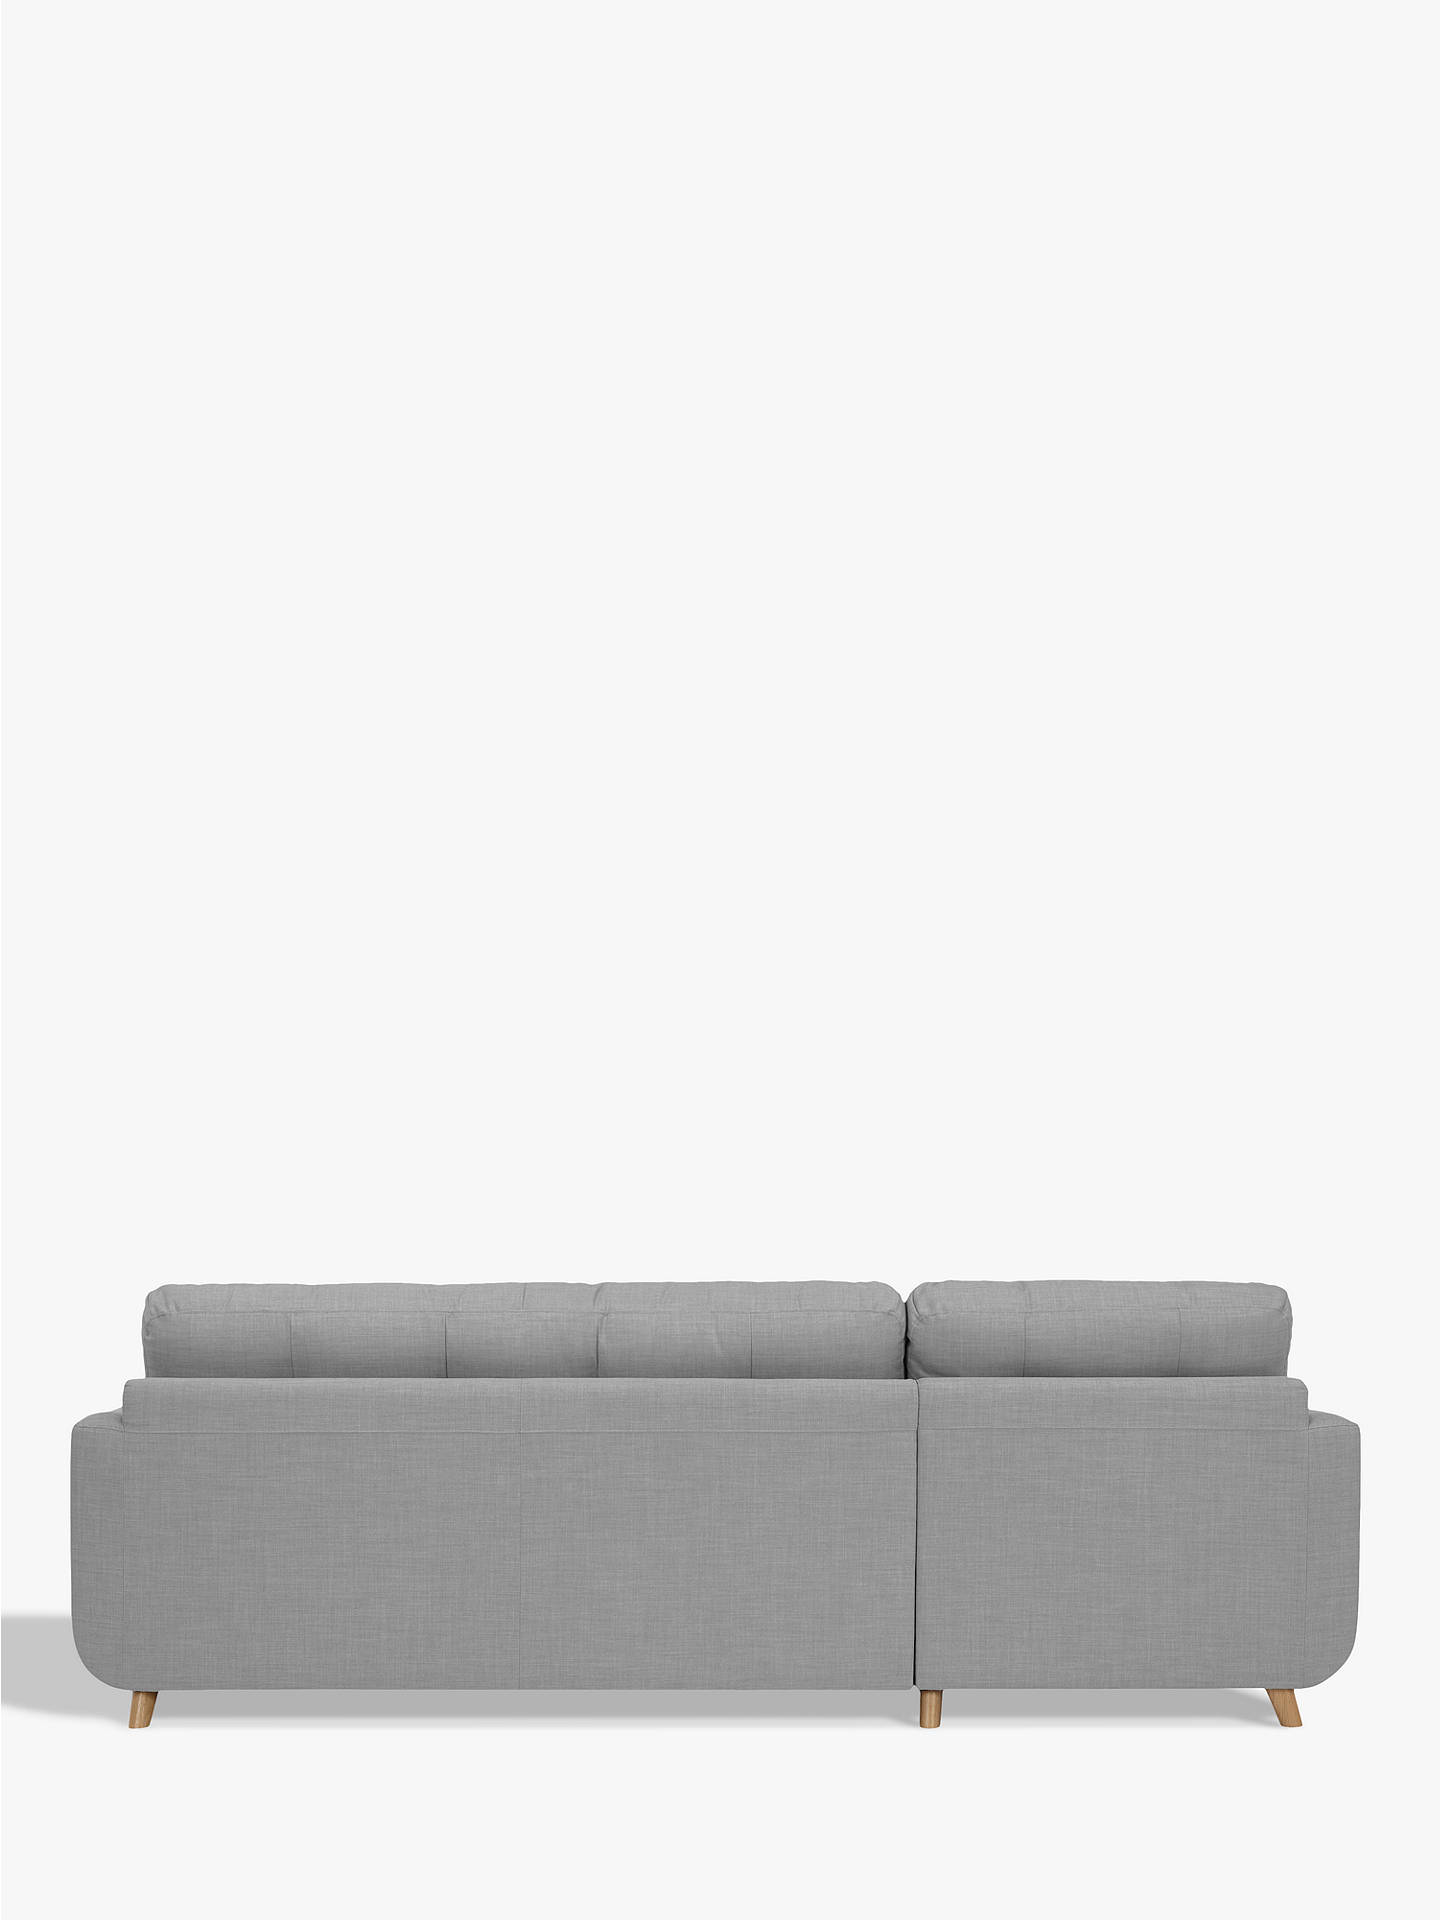 John Lewis Partners Barbican Lhf Chaise Sofa Bed With Storage